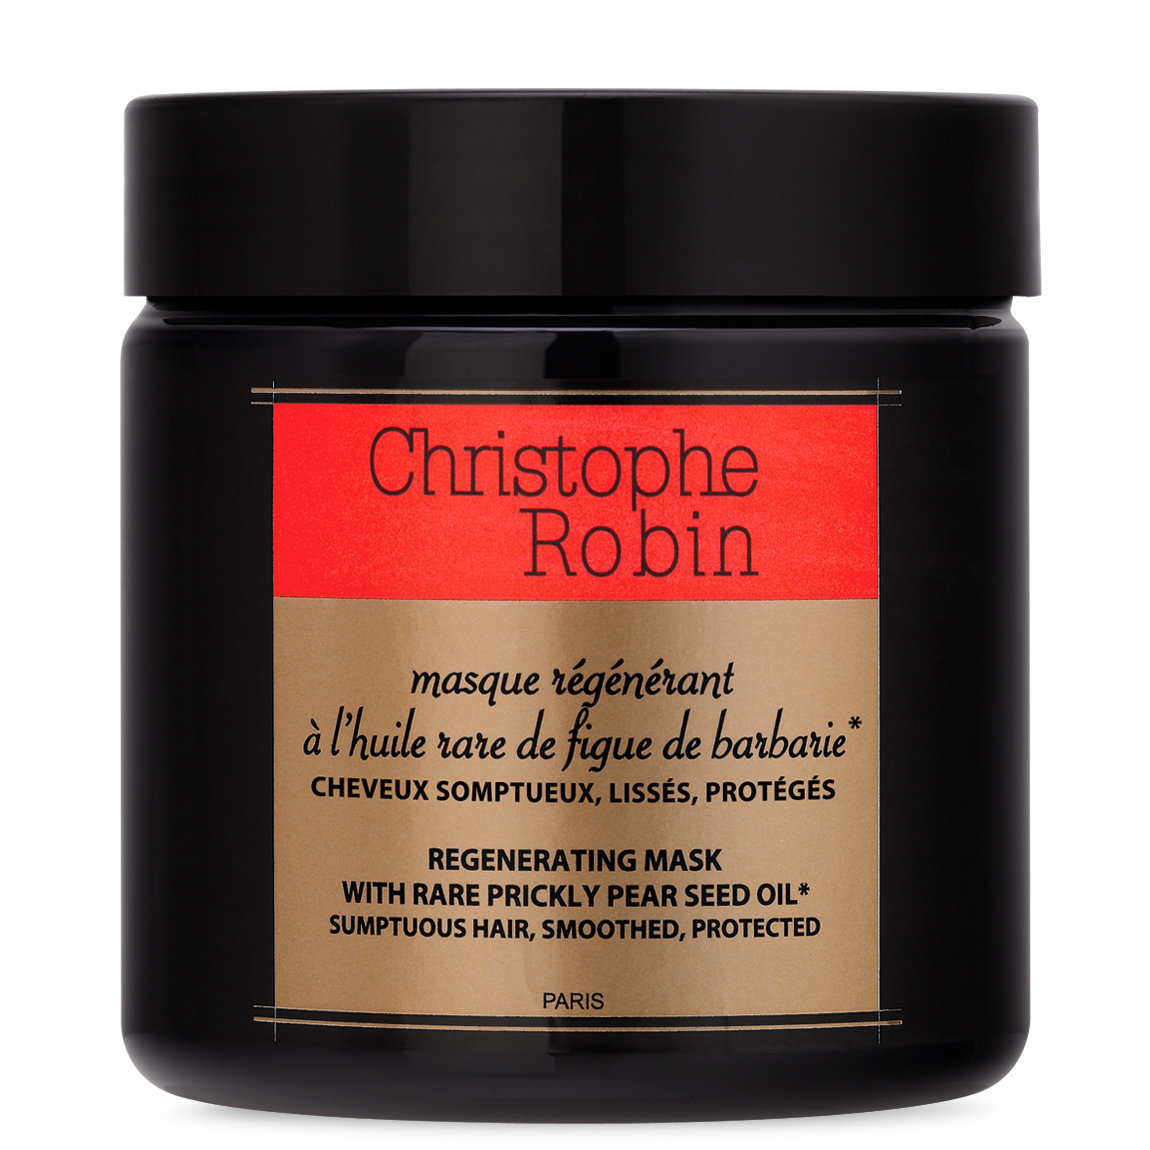 Christophe Robin Regenerating Mask with Rare Prickly Pear Oil alternative view 1 - product swatch.